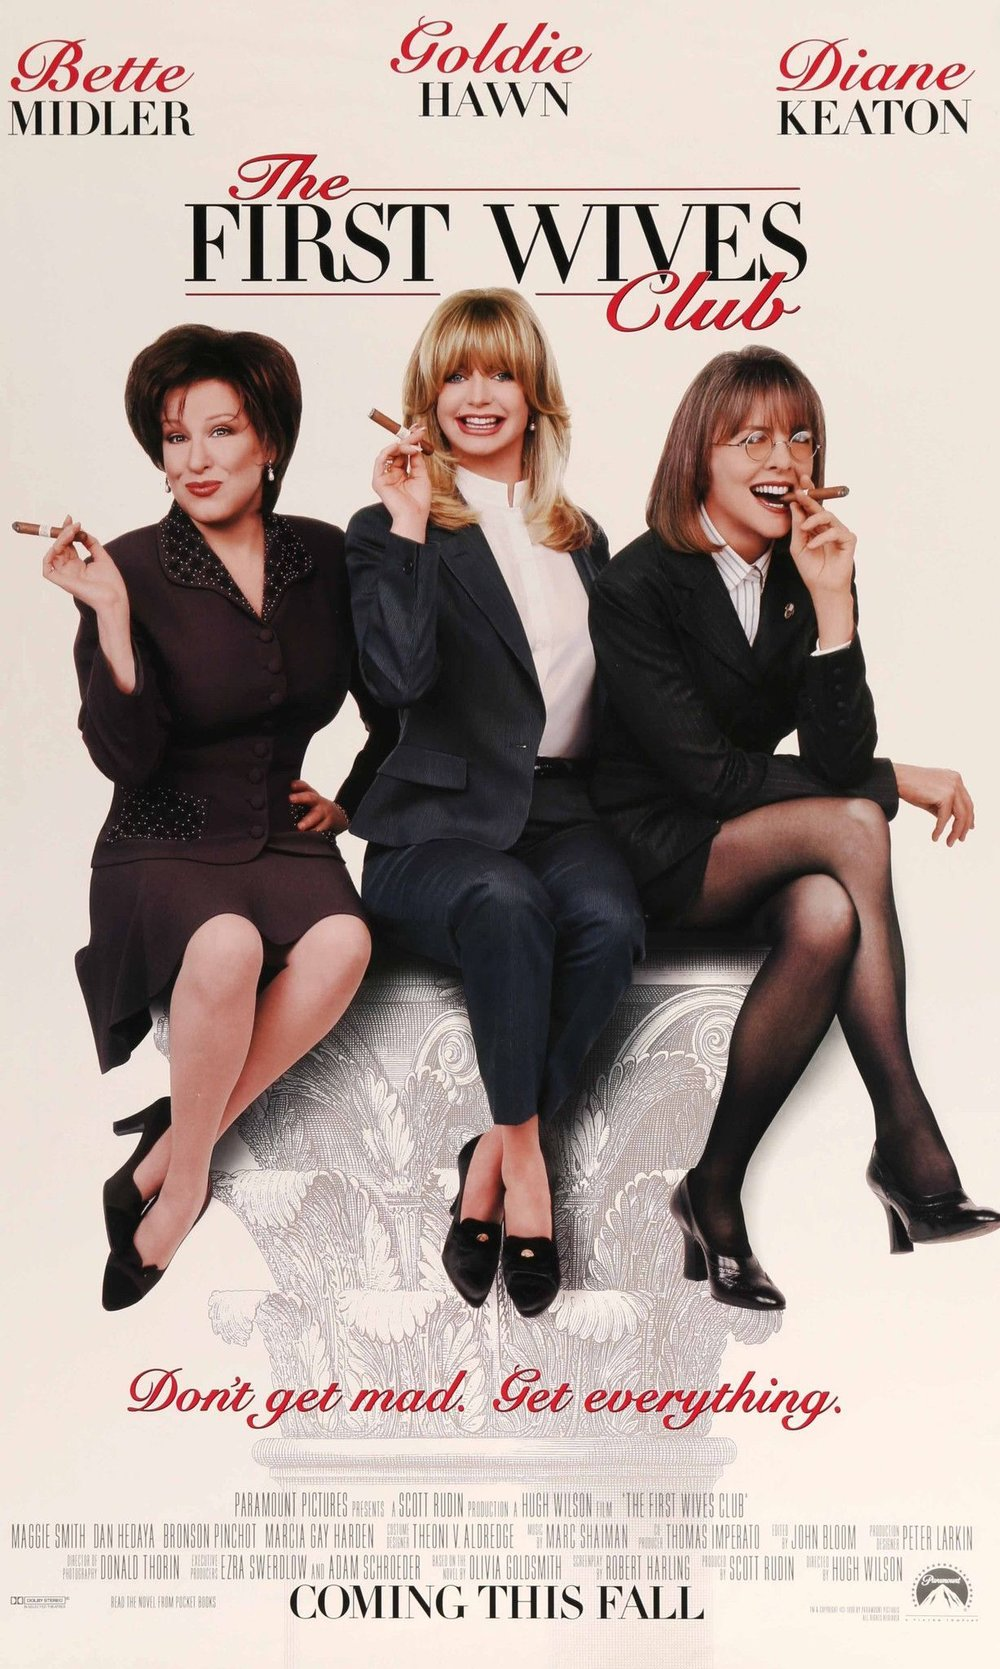 The First Wives Club (1996) - Best guess: 3 of Hollywood's favorite women get revenge on their ex-husbands.